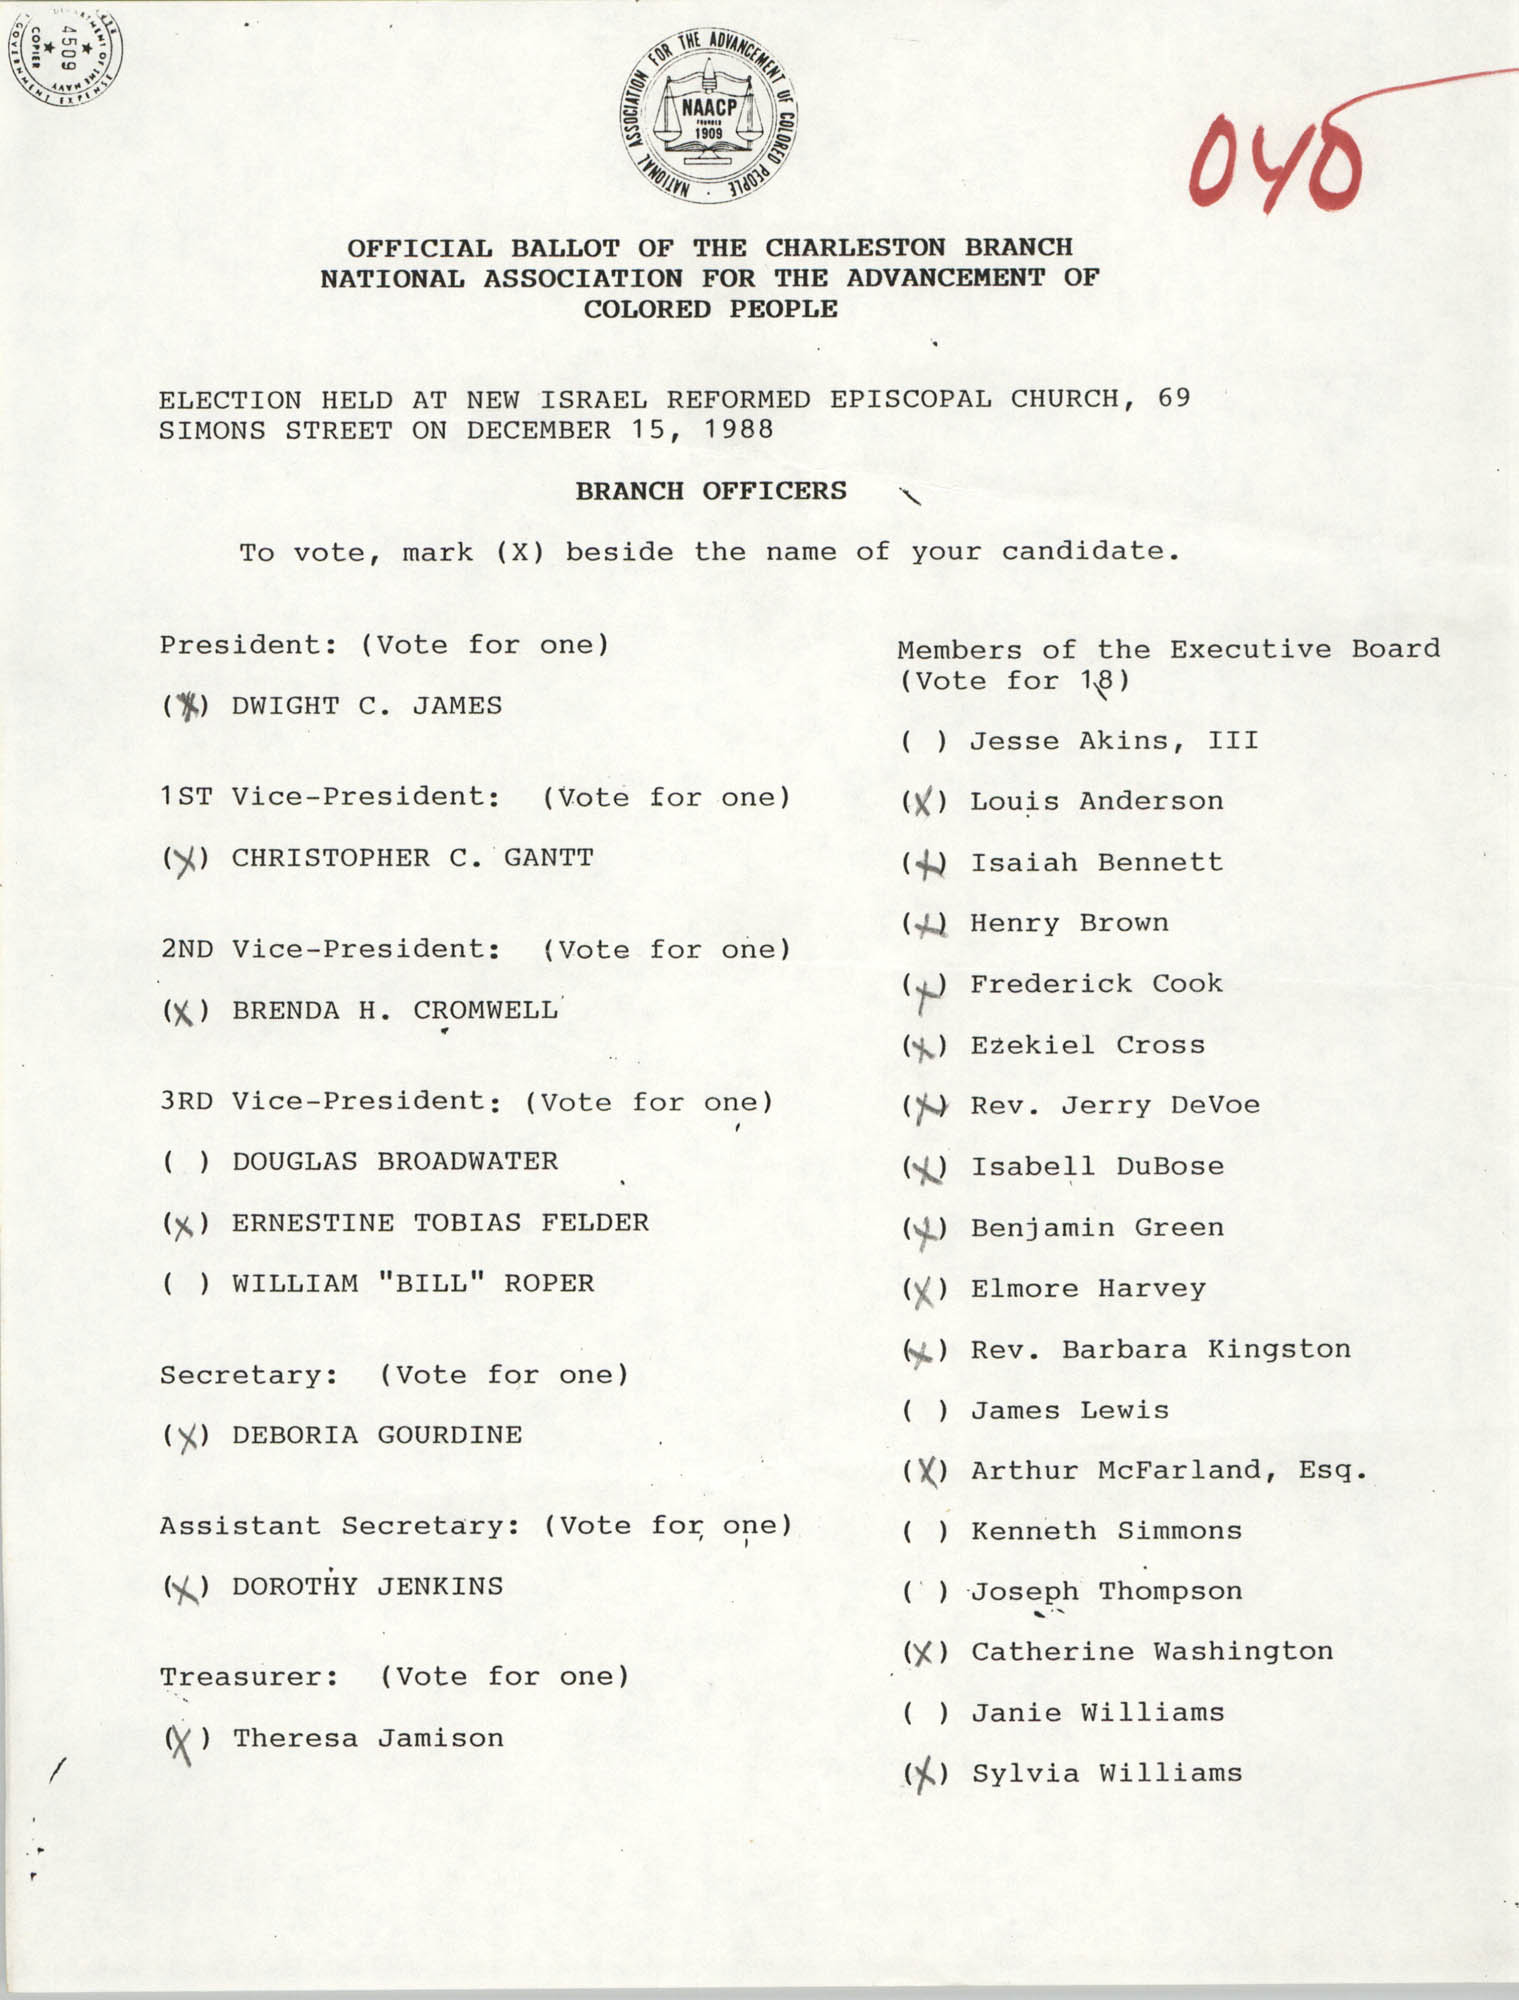 Official Ballot of the Charleston Branch of the NAACP, 040